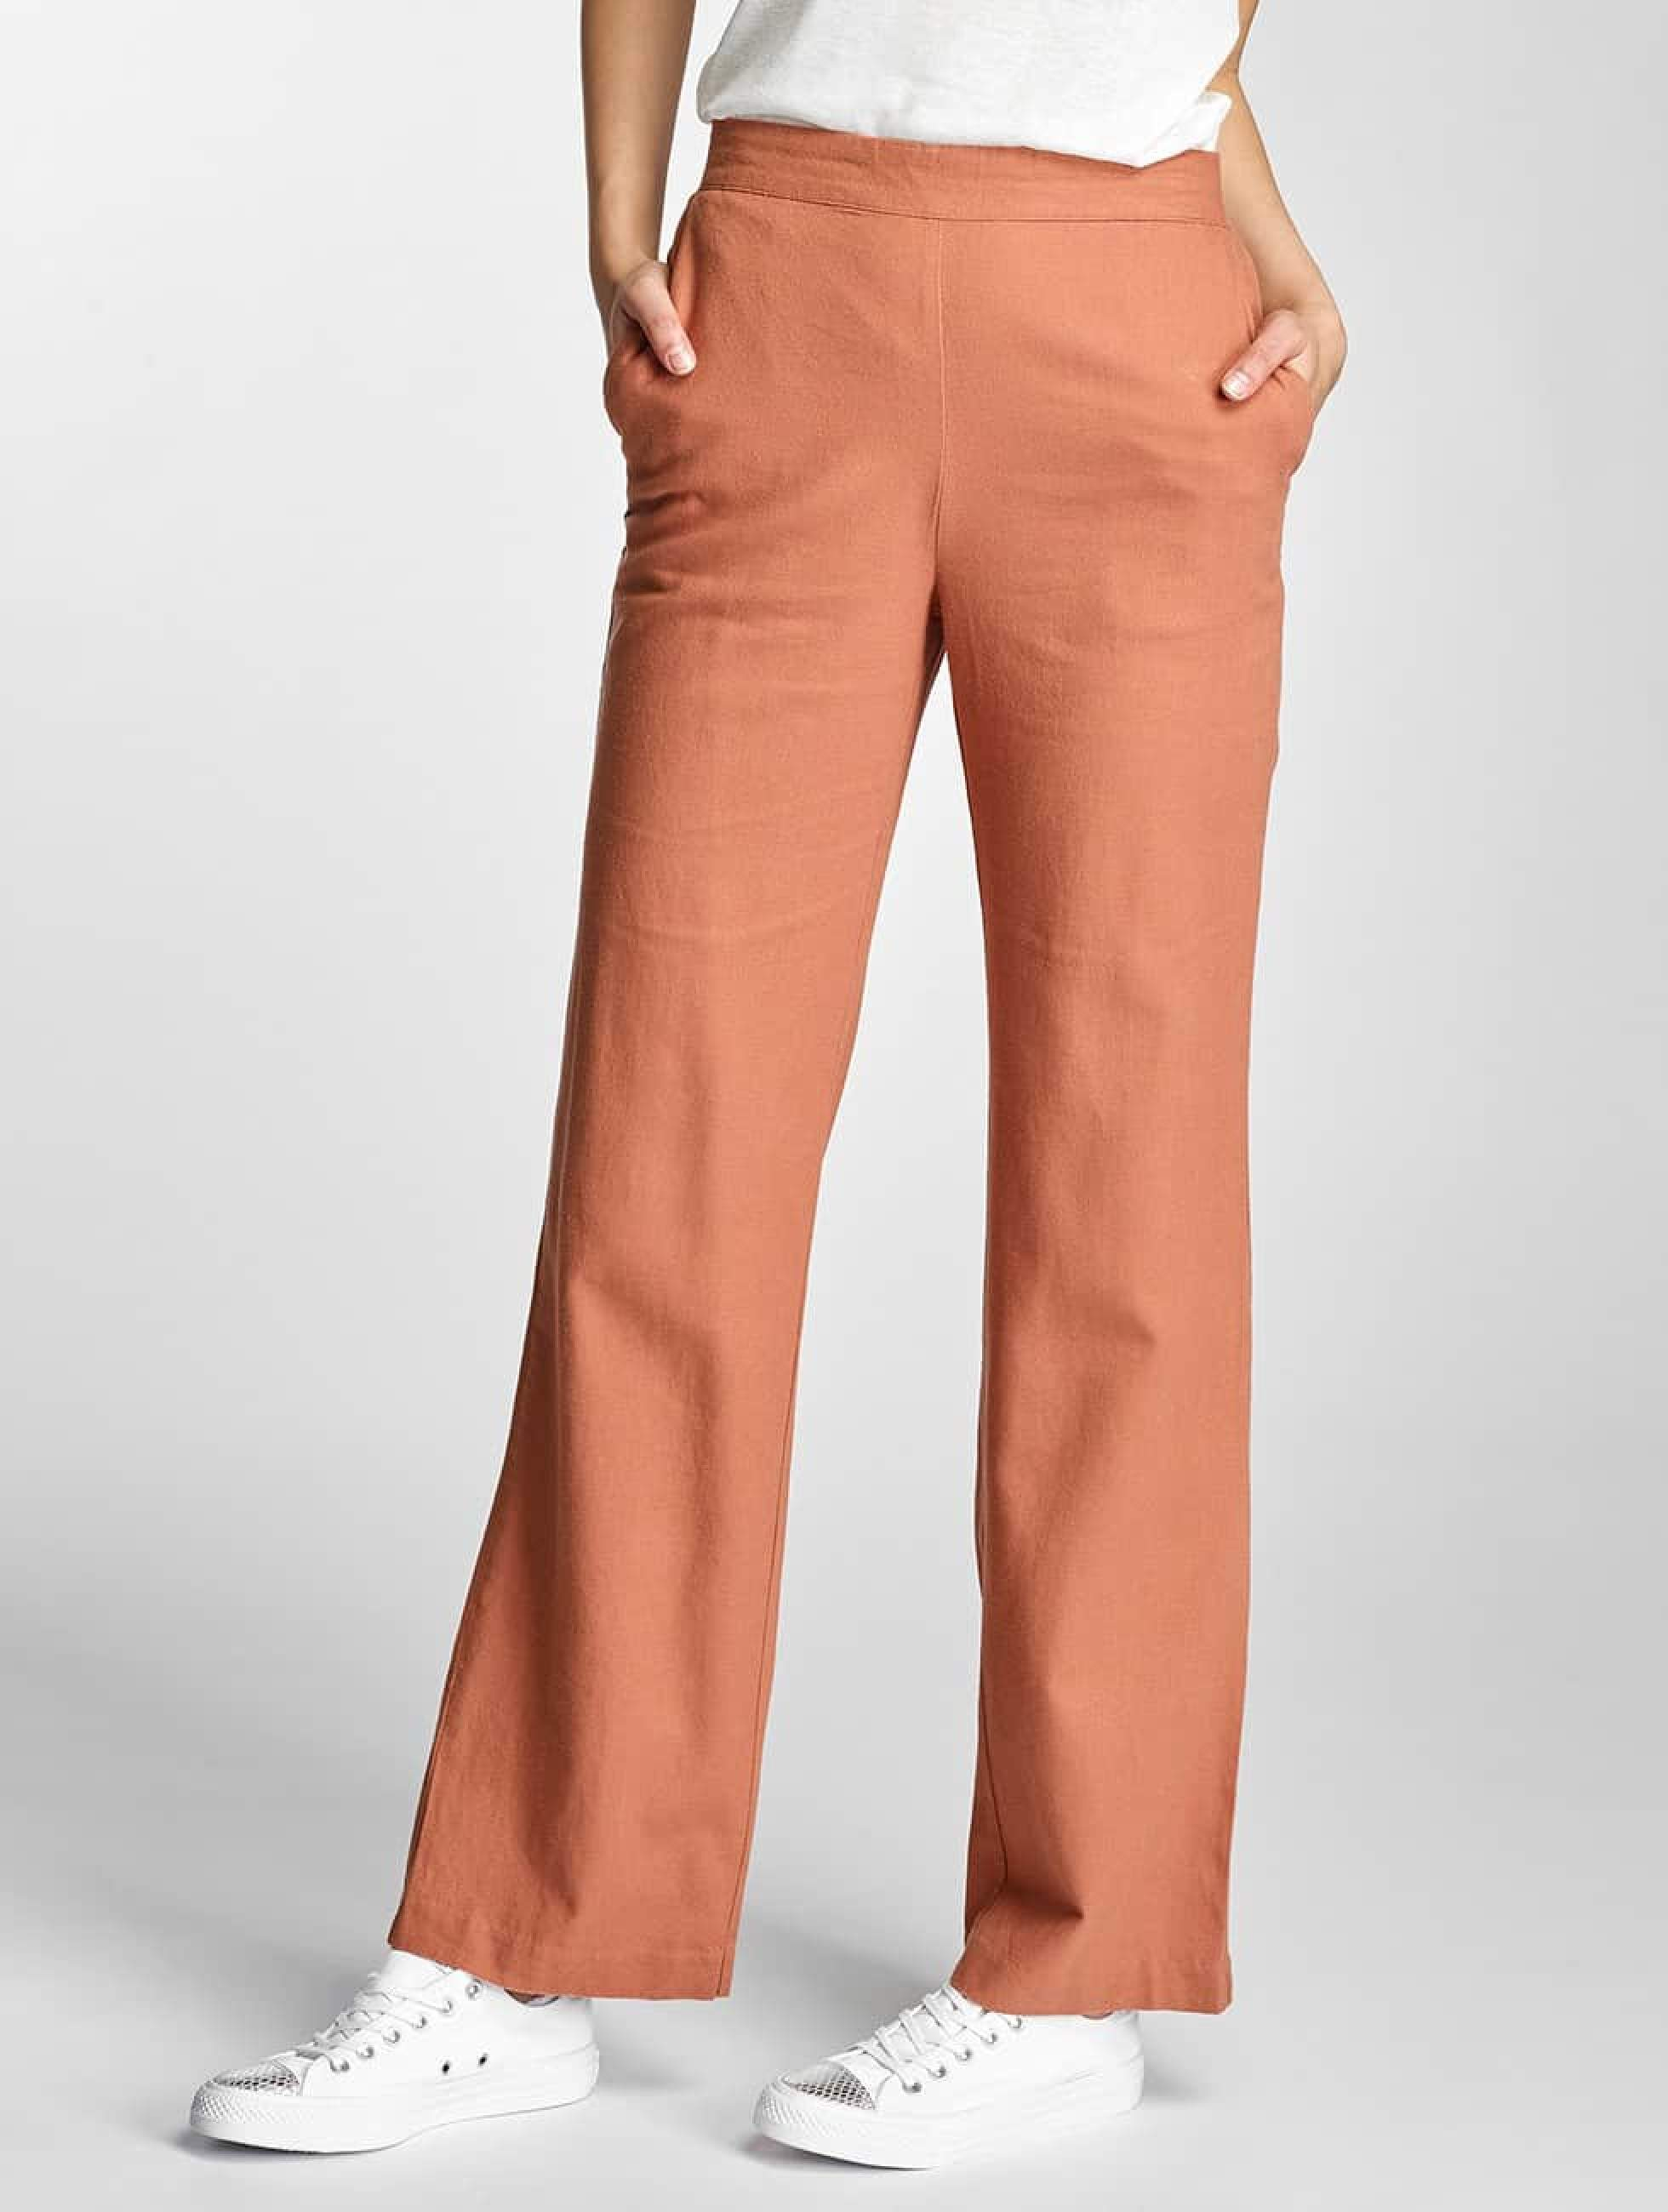 7271fb600e31d2 Vero Moda Damen Chino VMMilo-Citrus in braun 311516